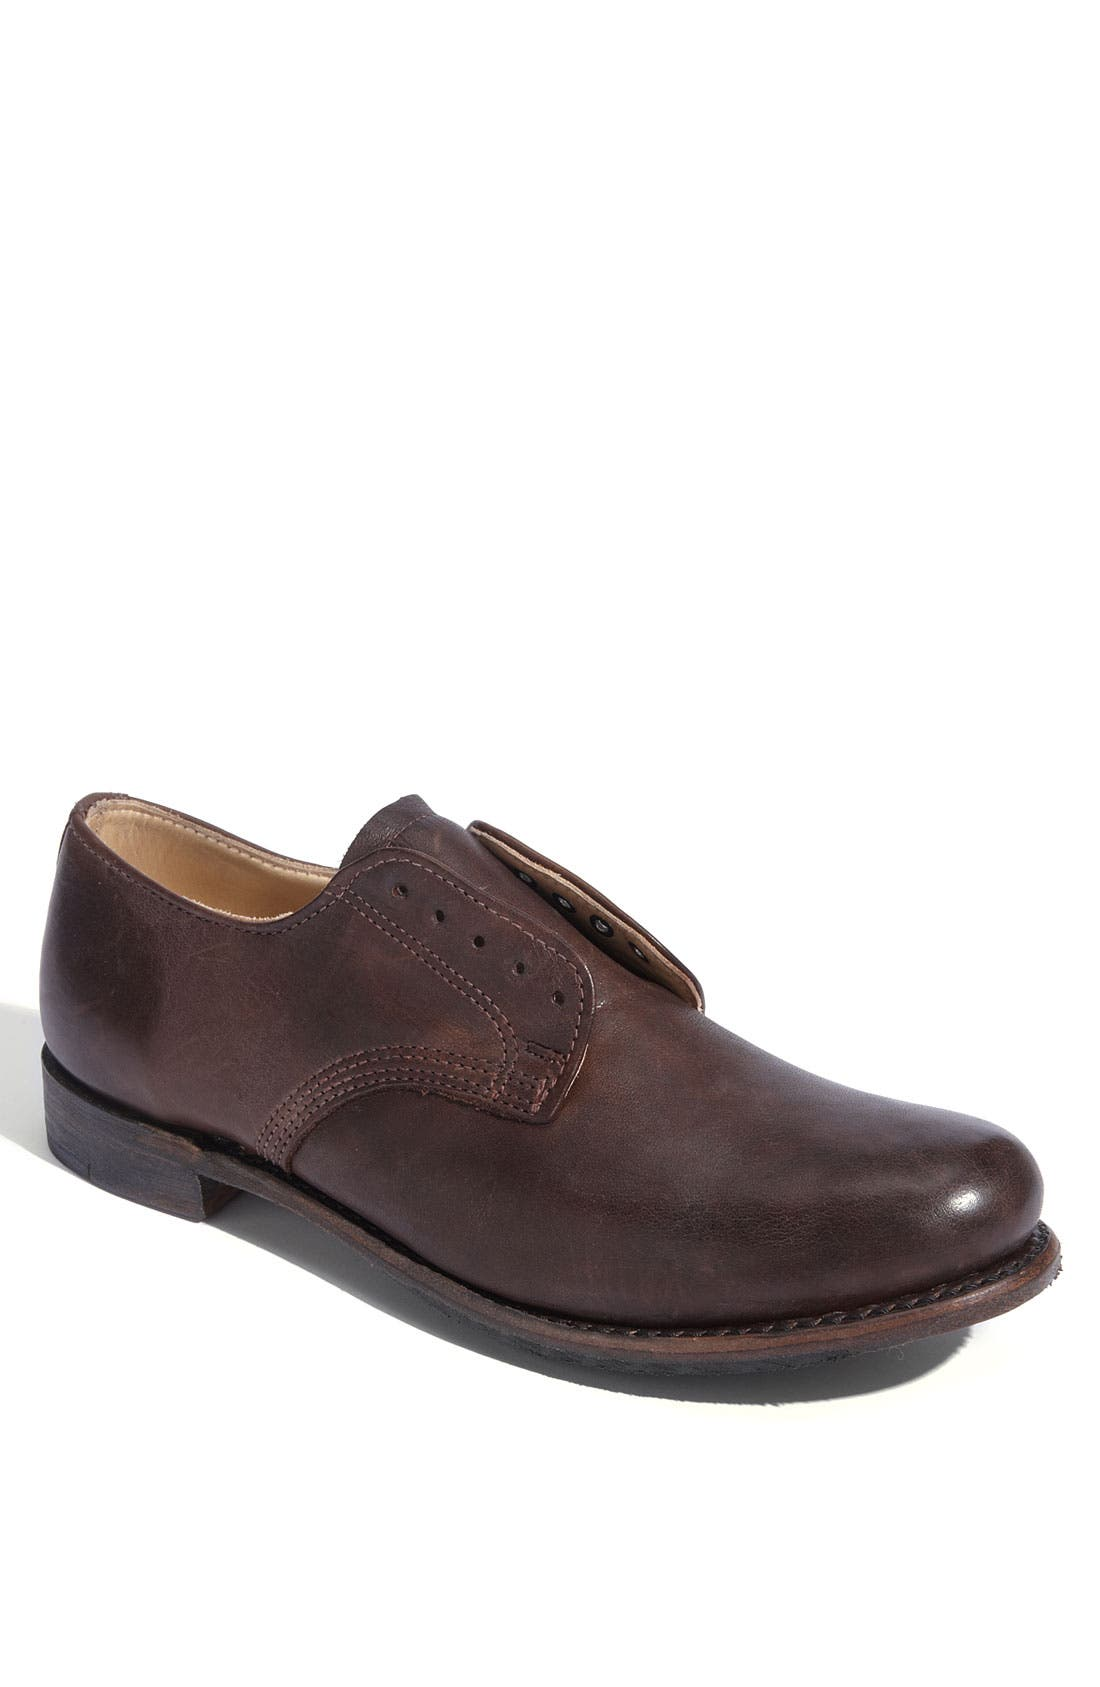 Alternate Image 1 Selected - Vintage Shoe Company 'Judson' Oxford